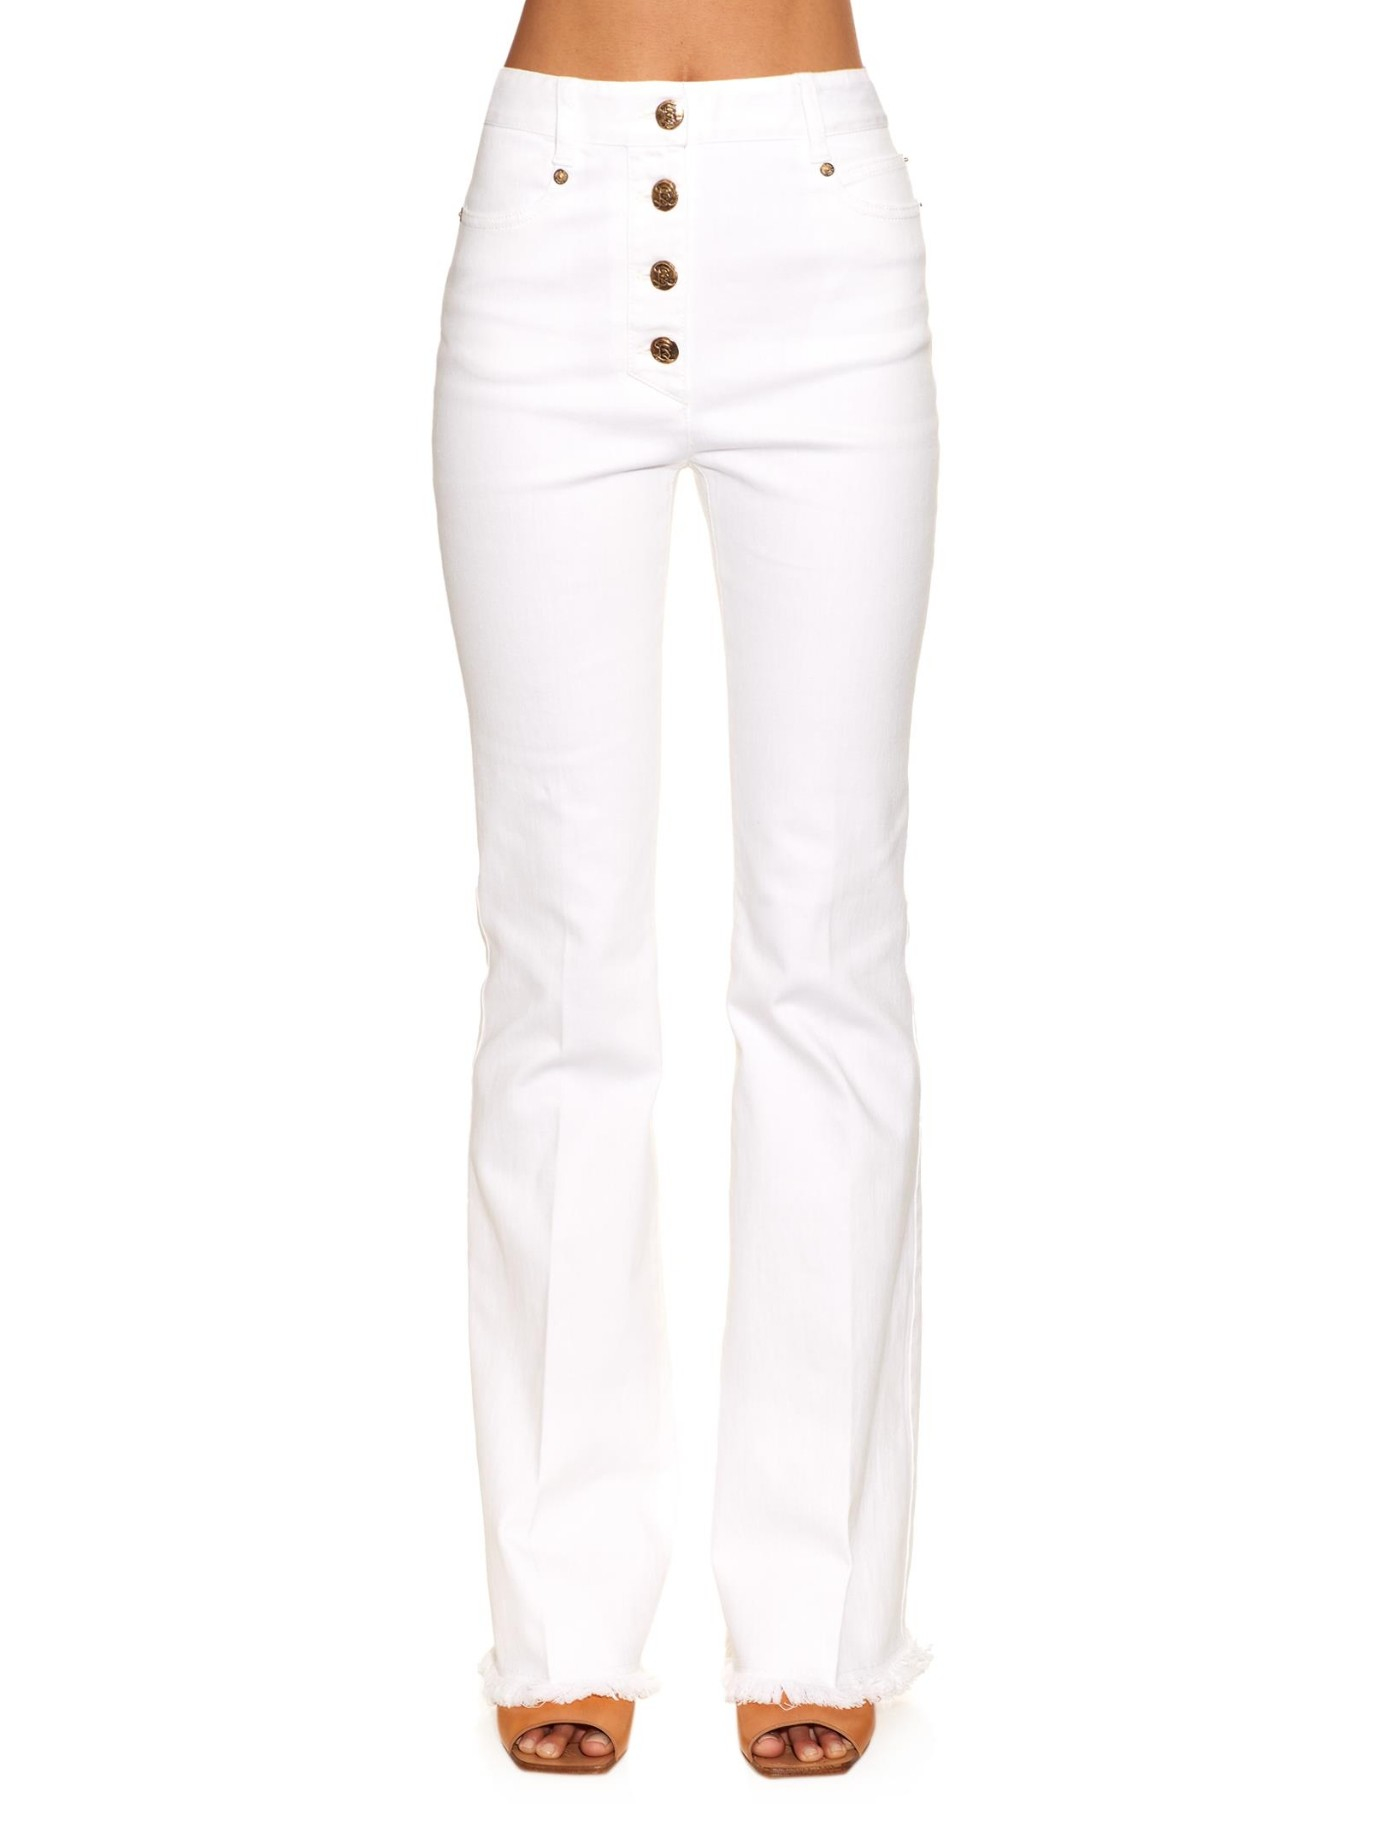 Sonia rykiel Fringed-hem High-rise Flared Jeans in White | Lyst